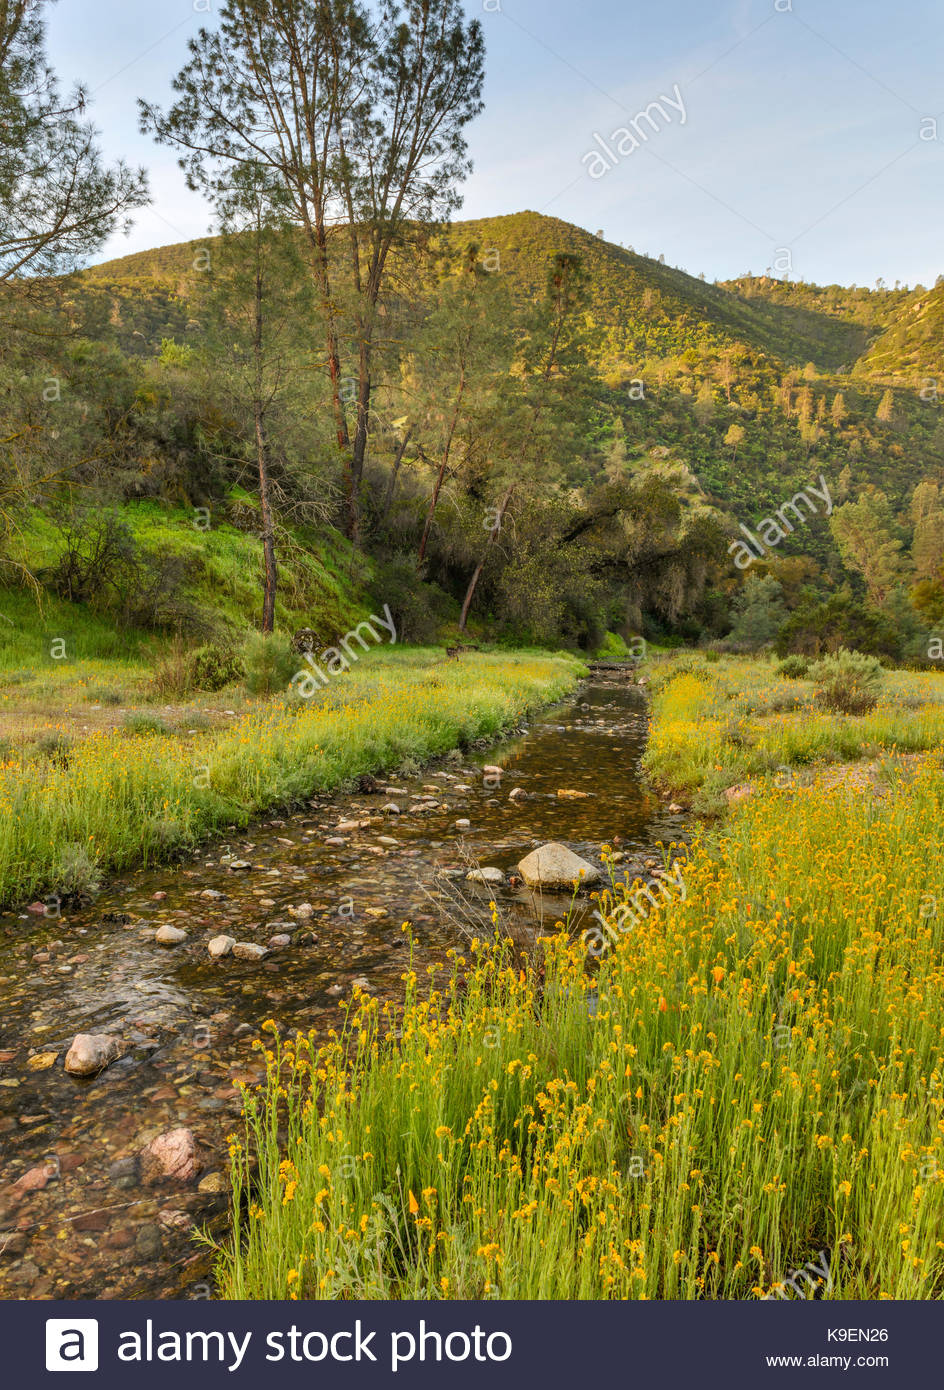 Chalone Creek in Spring, Pinnacles National Park, California - Stock Image